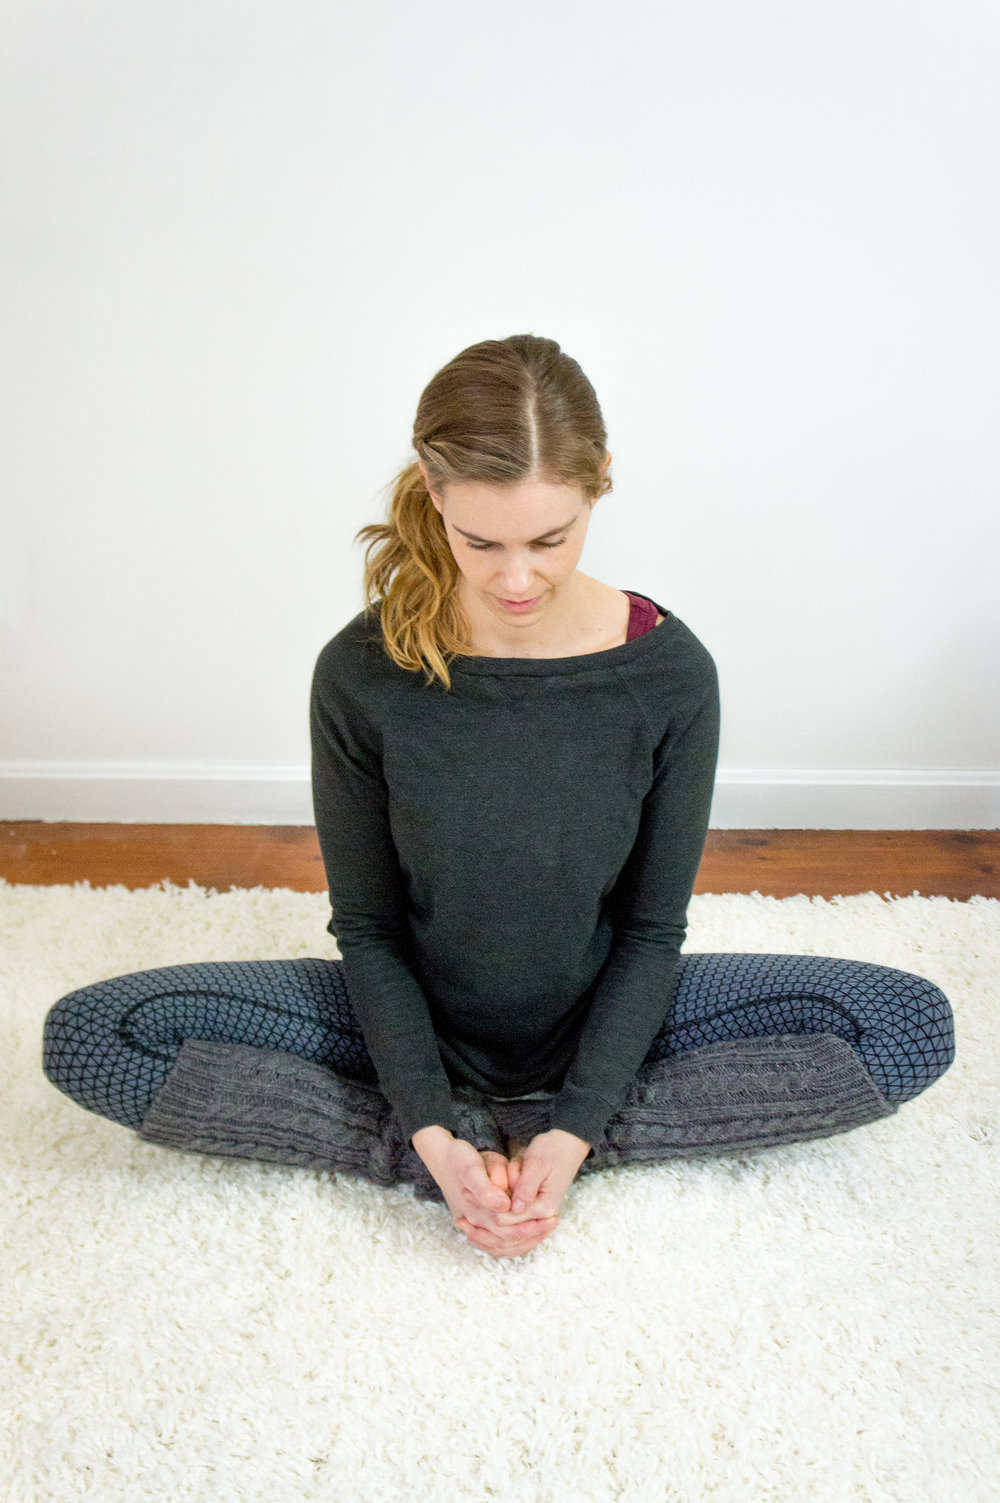 Bound Angle Pose, Baddha Konasana   Begin by sitting on a small pillow or blanket with your legs straight out in front of you. Take a deep breath in, and as you exhale bend through your knees and start to bring your feet in towards your pelvis, as pictured. The real stretch of the Liver meridian happens when your feet are pulled further in towards your body vs. further out which ends up being more of an outer thigh stretch. If this is too difficult, pillows can be placed under your knees or you can do this stretch lying down as explained in a previous post:  Breathe Easy During the Holidays  .  Try to keep your spine long and tall. If you need more of a stretch, follow the same guidelines as above, start to lean forward cautiously paying attention to when your back, knees, or groin start speaking to you. Hold for approximately 8 deep breaths.